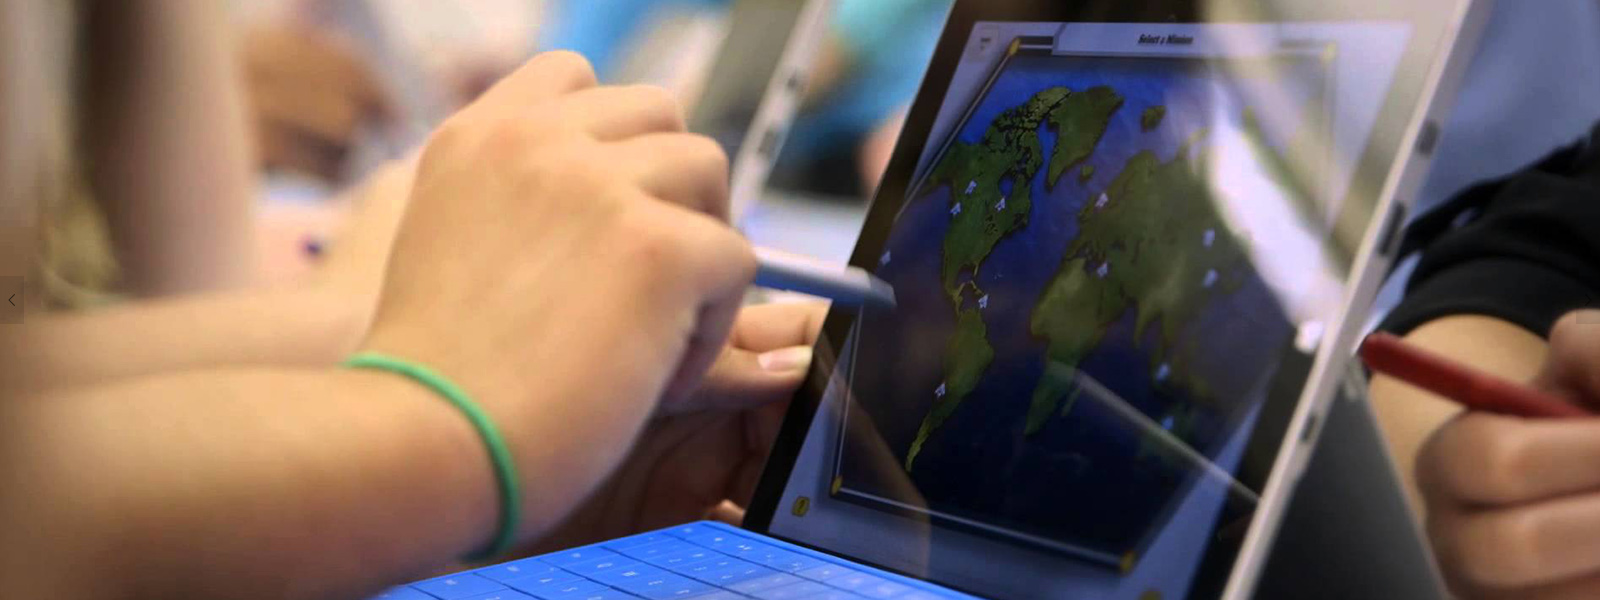 Young kids drawing on their Surface Pro 4 with Surface Pen